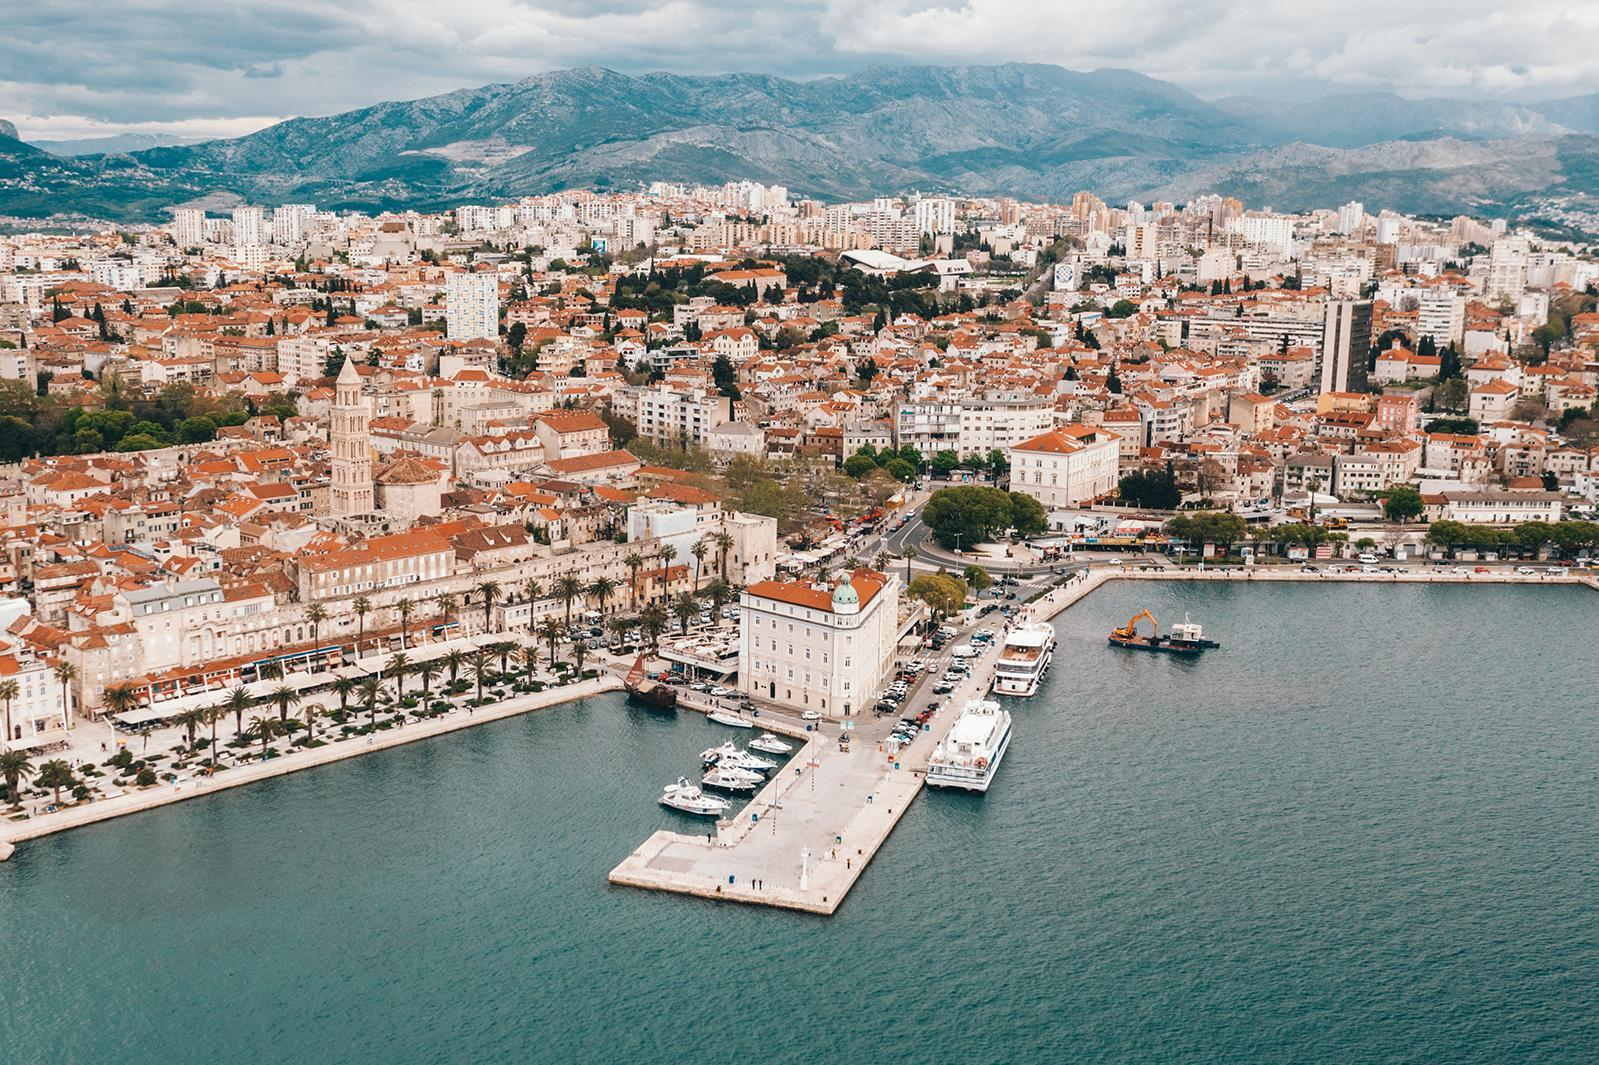 Guide to the City of Split: Top attractions to see during your stay